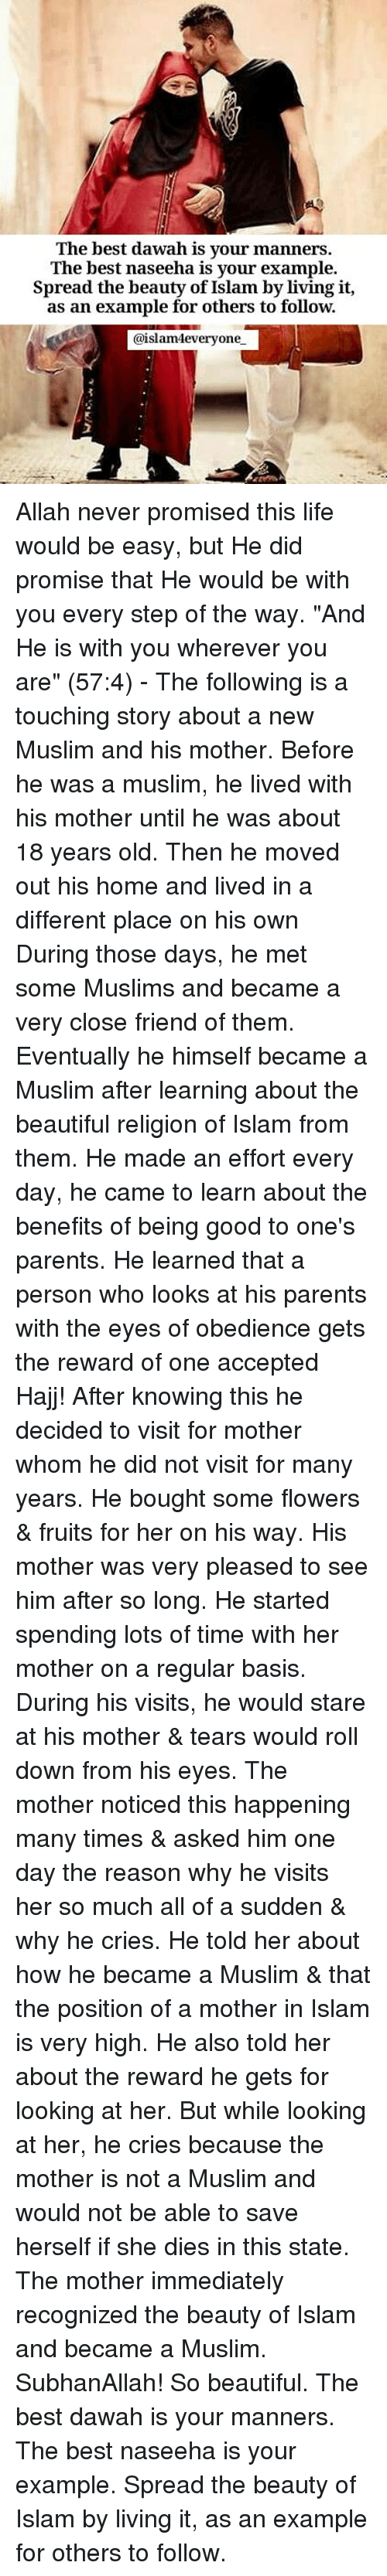 "Beautiful, Life, and Memes: The best dawah is your manners.  The best naseeha is vour example.  Spread the beauty of Islam by living it,  as an example for others to follow.  @islamteveryone Allah never promised this life would be easy, but He did promise that He would be with you every step of the way. ""And He is with you wherever you are"" (57:4) - The following is a touching story about a new Muslim and his mother. Before he was a muslim, he lived with his mother until he was about 18 years old. Then he moved out his home and lived in a different place on his own During those days, he met some Muslims and became a very close friend of them. Eventually he himself became a Muslim after learning about the beautiful religion of Islam from them. He made an effort every day, he came to learn about the benefits of being good to one's parents. He learned that a person who looks at his parents with the eyes of obedience gets the reward of one accepted Hajj! After knowing this he decided to visit for mother whom he did not visit for many years. He bought some flowers & fruits for her on his way. His mother was very pleased to see him after so long. He started spending lots of time with her mother on a regular basis. During his visits, he would stare at his mother & tears would roll down from his eyes. The mother noticed this happening many times & asked him one day the reason why he visits her so much all of a sudden & why he cries. He told her about how he became a Muslim & that the position of a mother in Islam is very high. He also told her about the reward he gets for looking at her. But while looking at her, he cries because the mother is not a Muslim and would not be able to save herself if she dies in this state. The mother immediately recognized the beauty of Islam and became a Muslim. SubhanAllah! So beautiful. The best dawah is your manners. The best naseeha is your example. Spread the beauty of Islam by living it, as an example for others to follow."